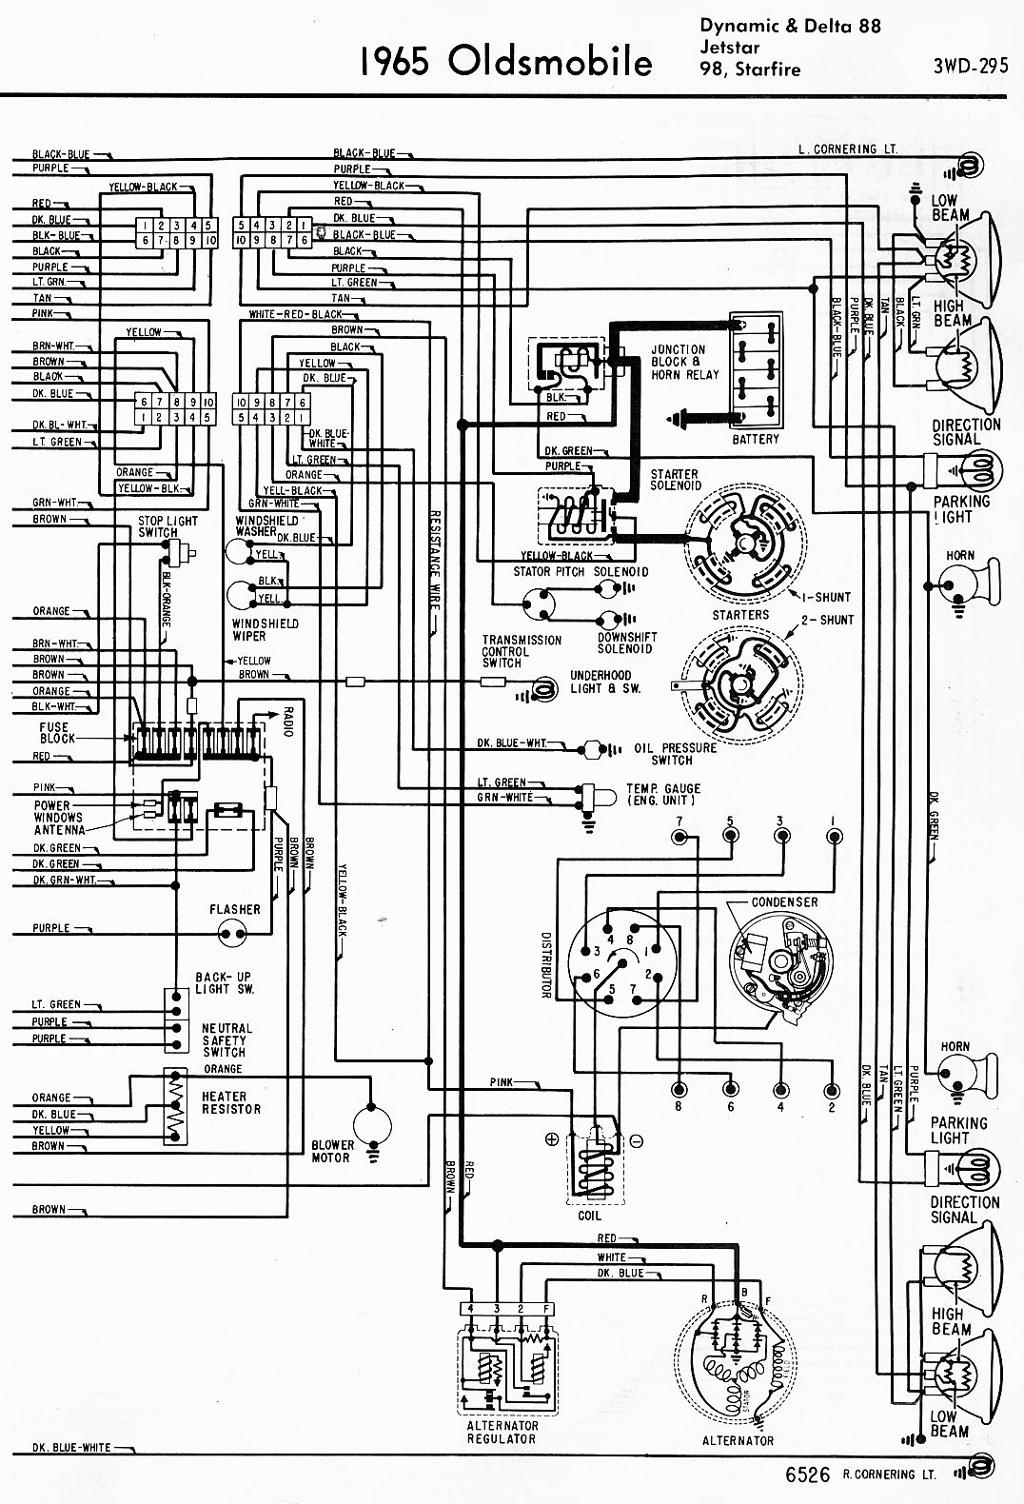 1995 Oldsmobile 88 Wiring Diagram Electrical Diagrams 1993 3 8 Engine Diy Enthusiasts U2022 Silhouette